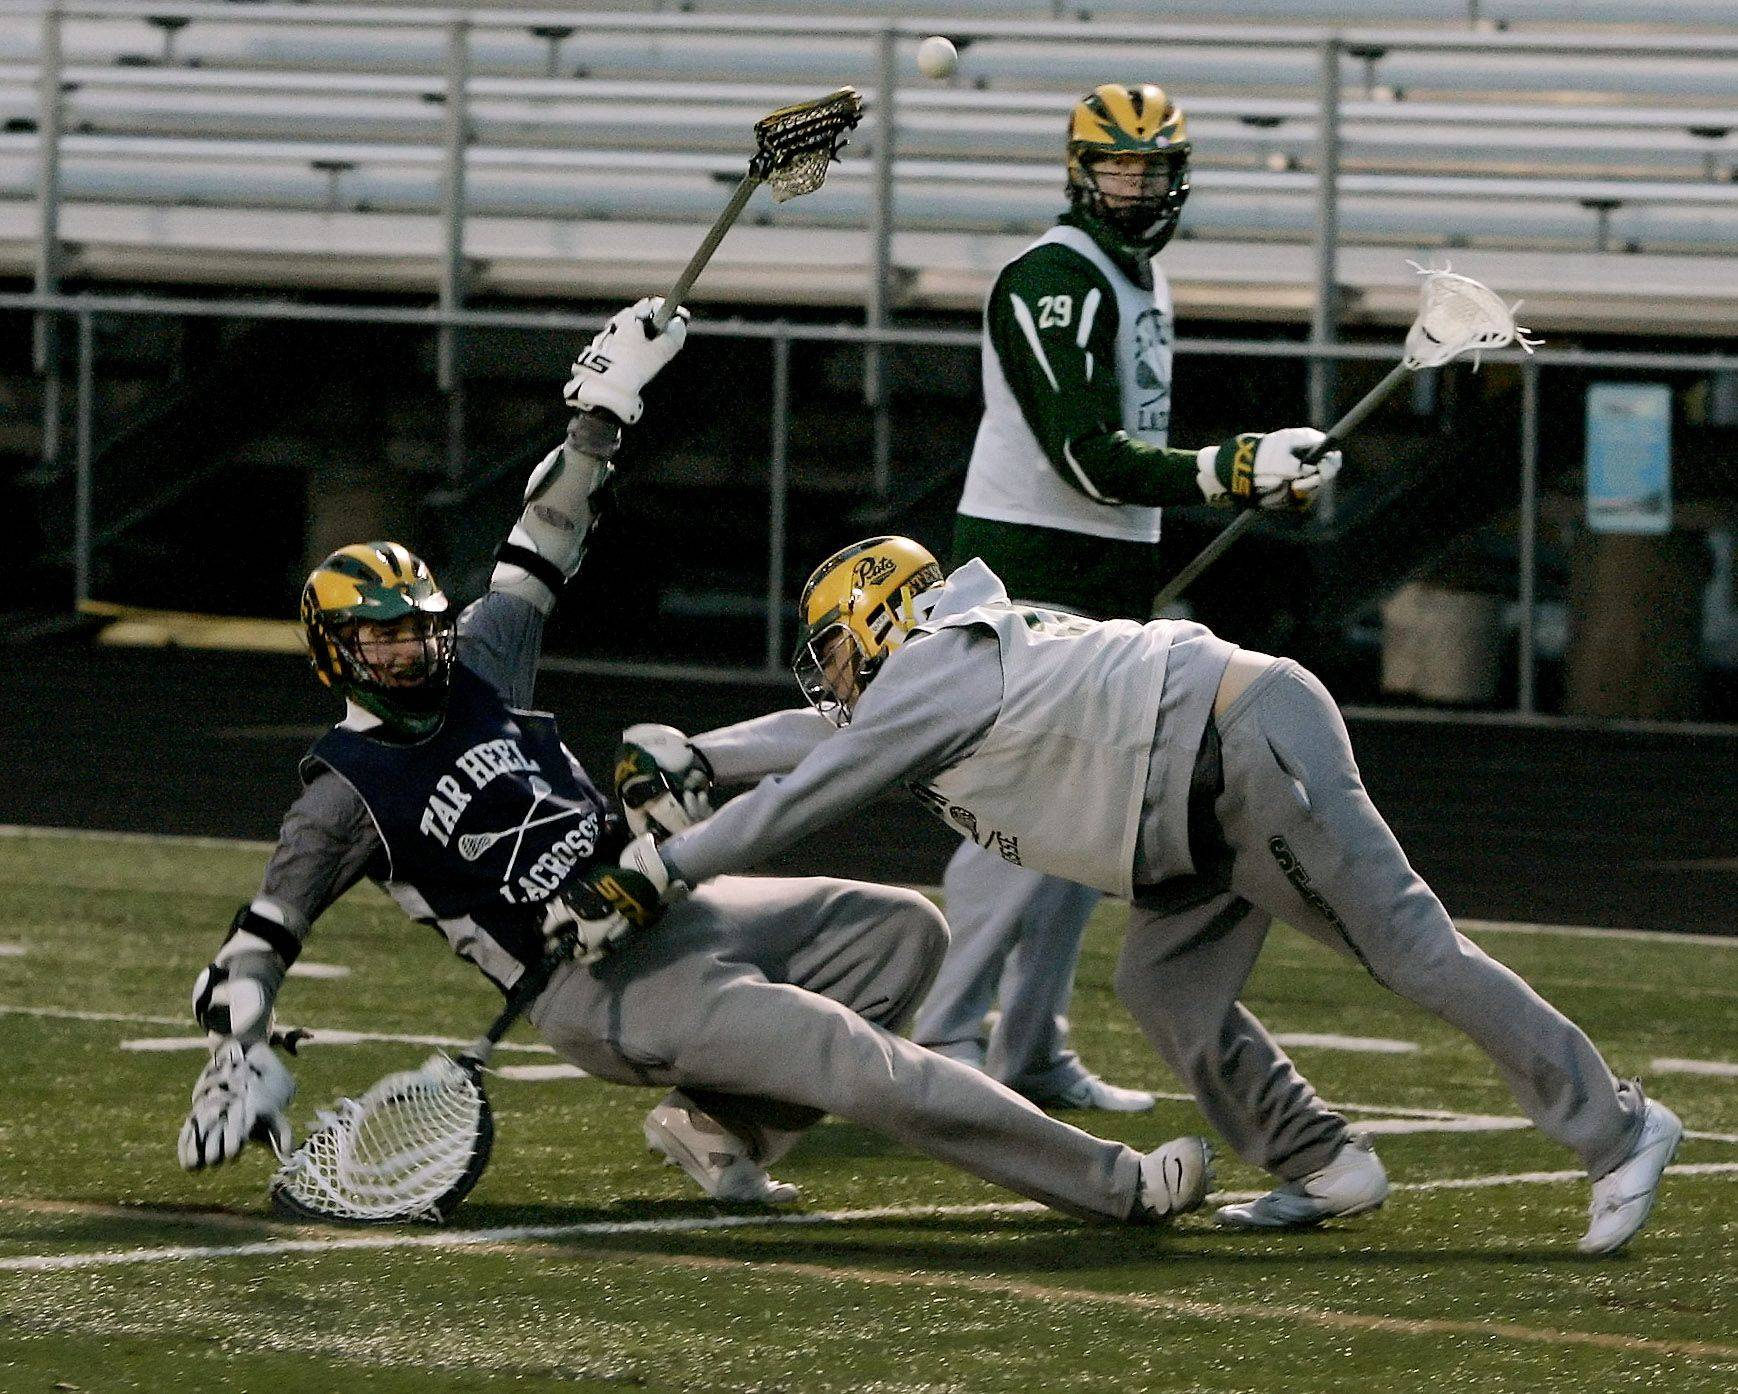 Goalkeeper Max Huber knocks down Sam Caruso during the boys lacrosse team practice at Stevenson High School in Lincolnshire.